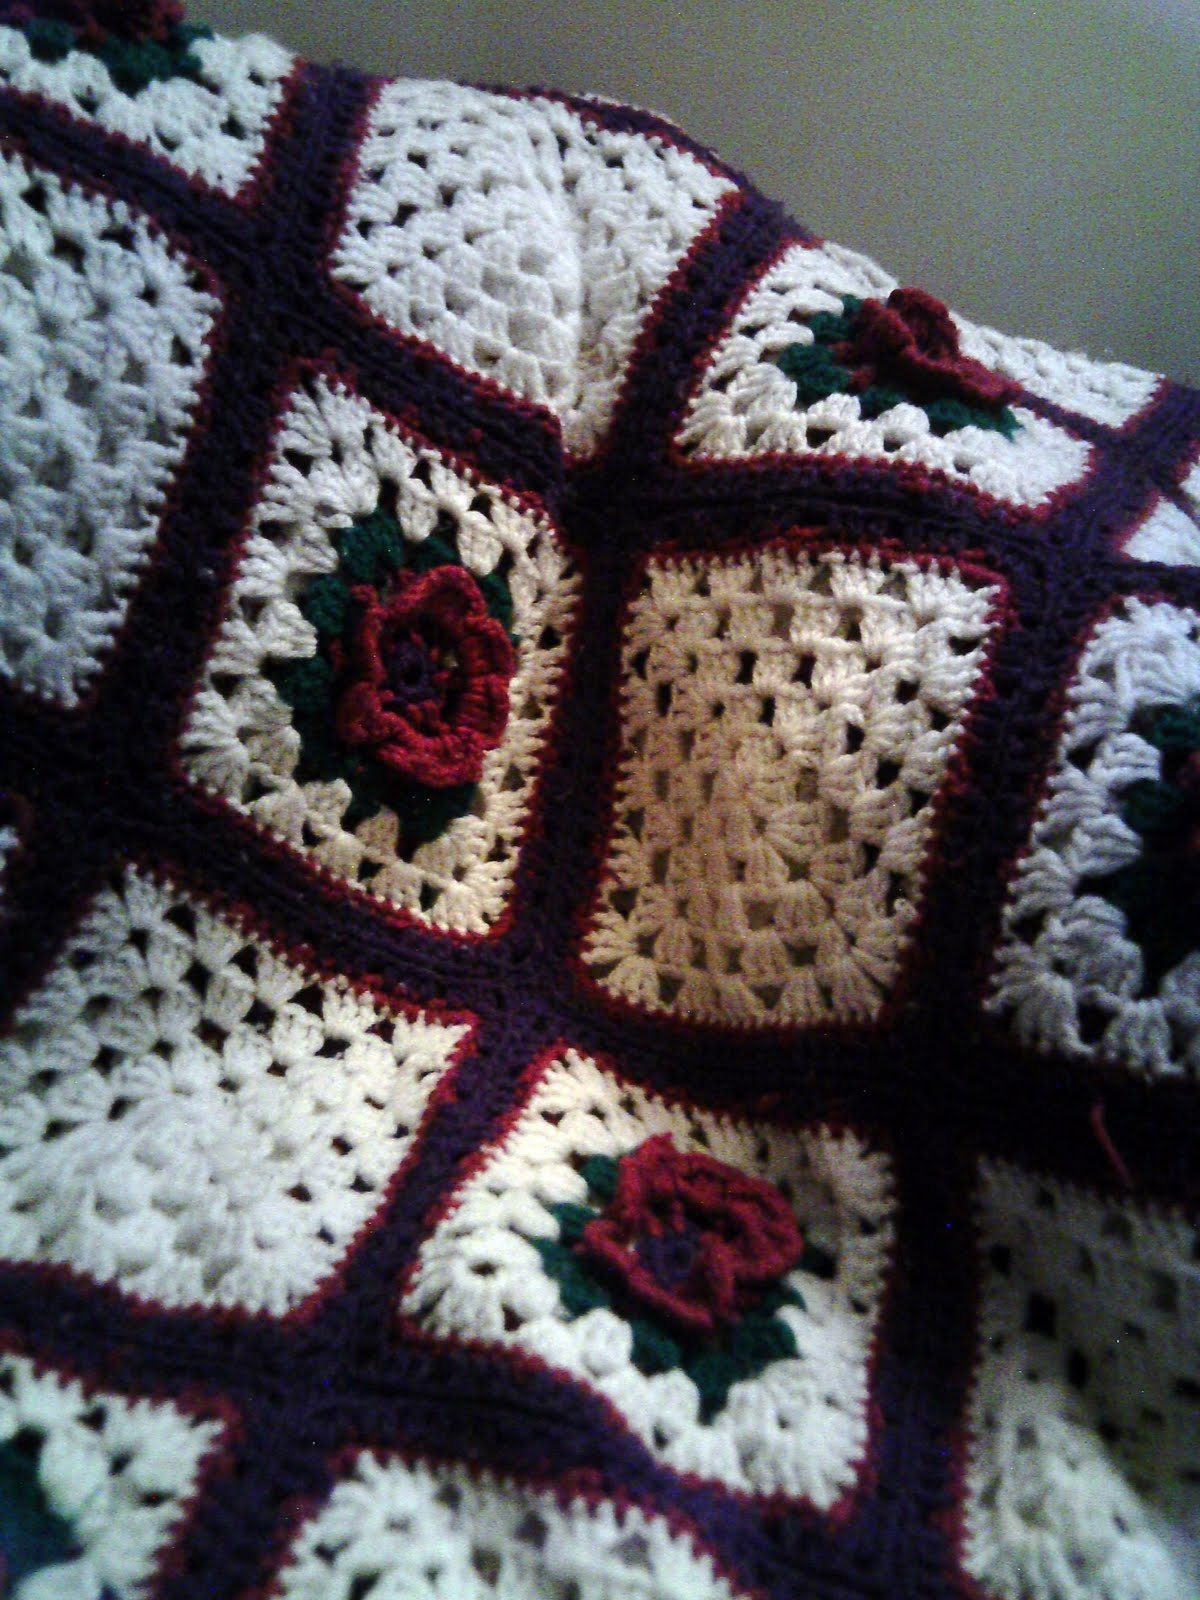 Crochet Patterns Granny Square Afghan : granny square crochet pattern eBay - Electronics, Cars, Fashion